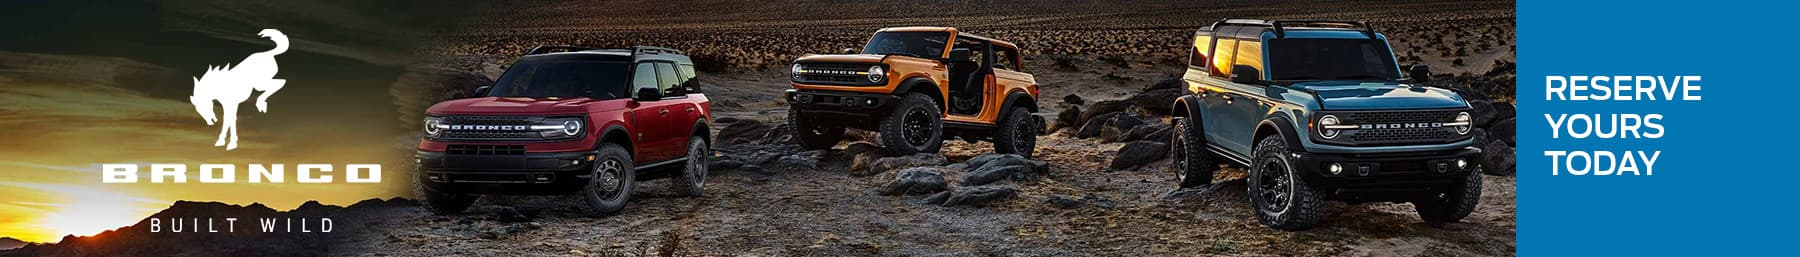 Ford Bronco Reserve Slide Desktop V2